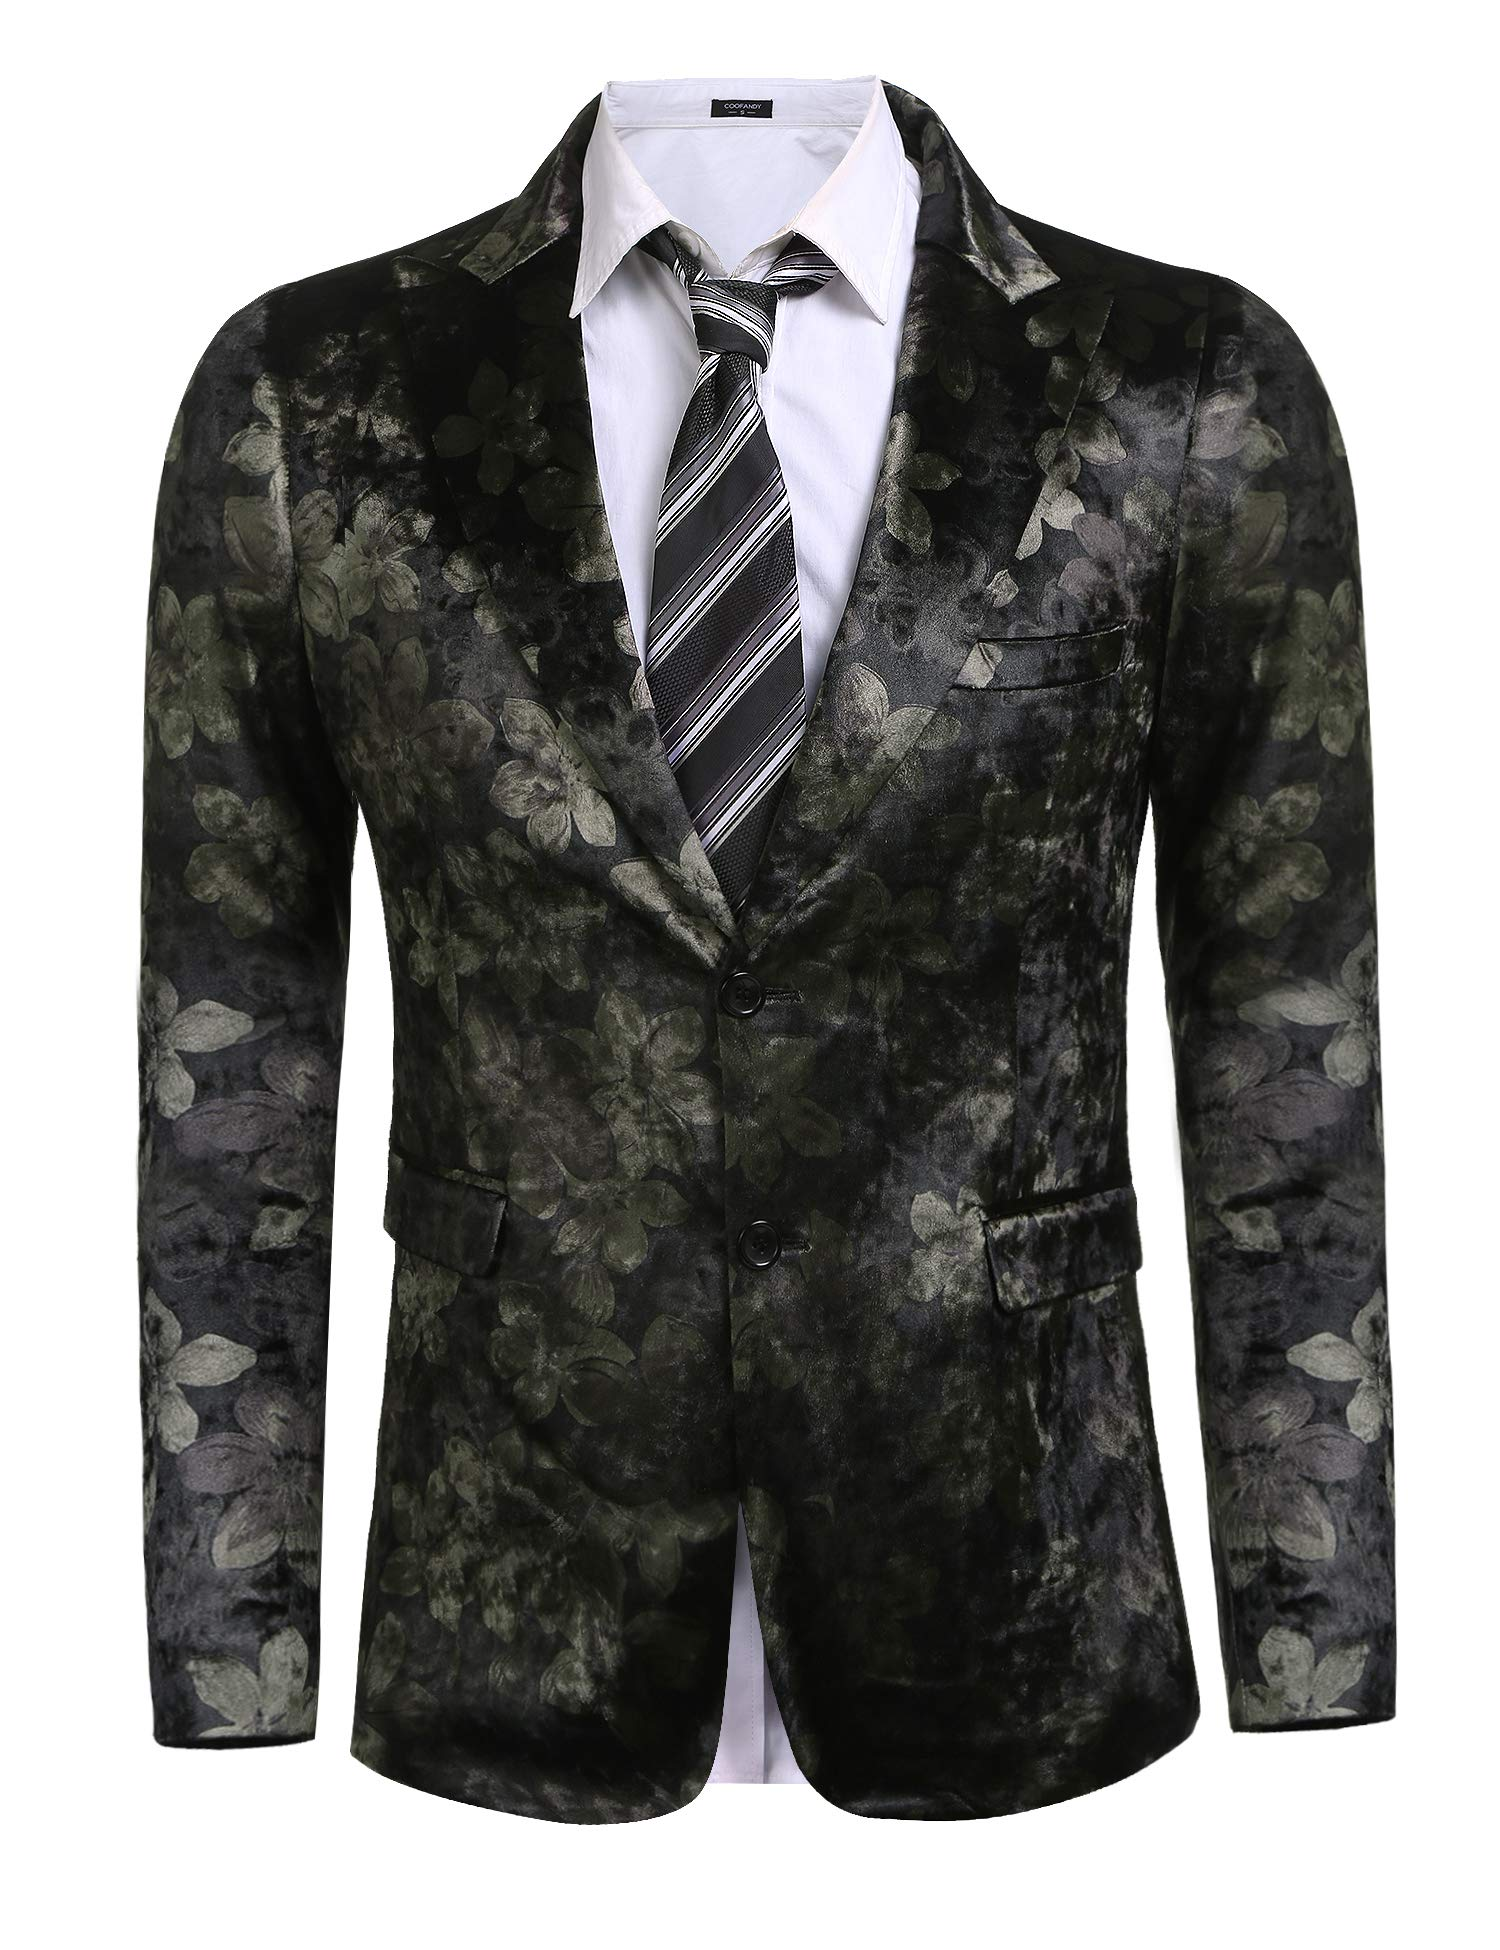 Coofandy Mens Stylish Notched Lapel Floral Casual Two Button Blazer Business Suit,Gray,Small by COOFANDY